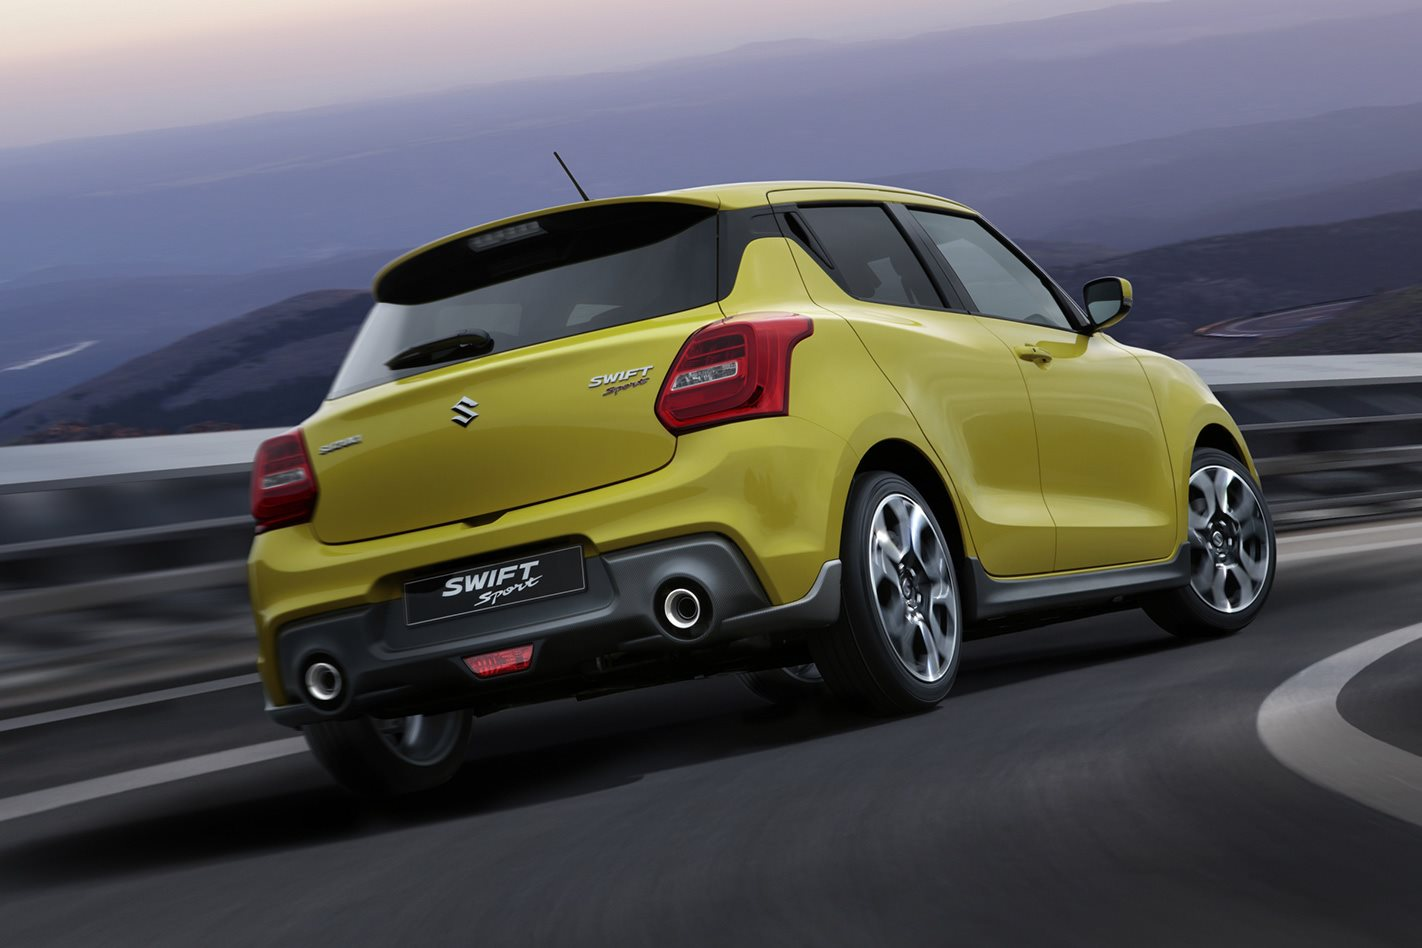 2018 Suzuki Swift Sport rear.jpg